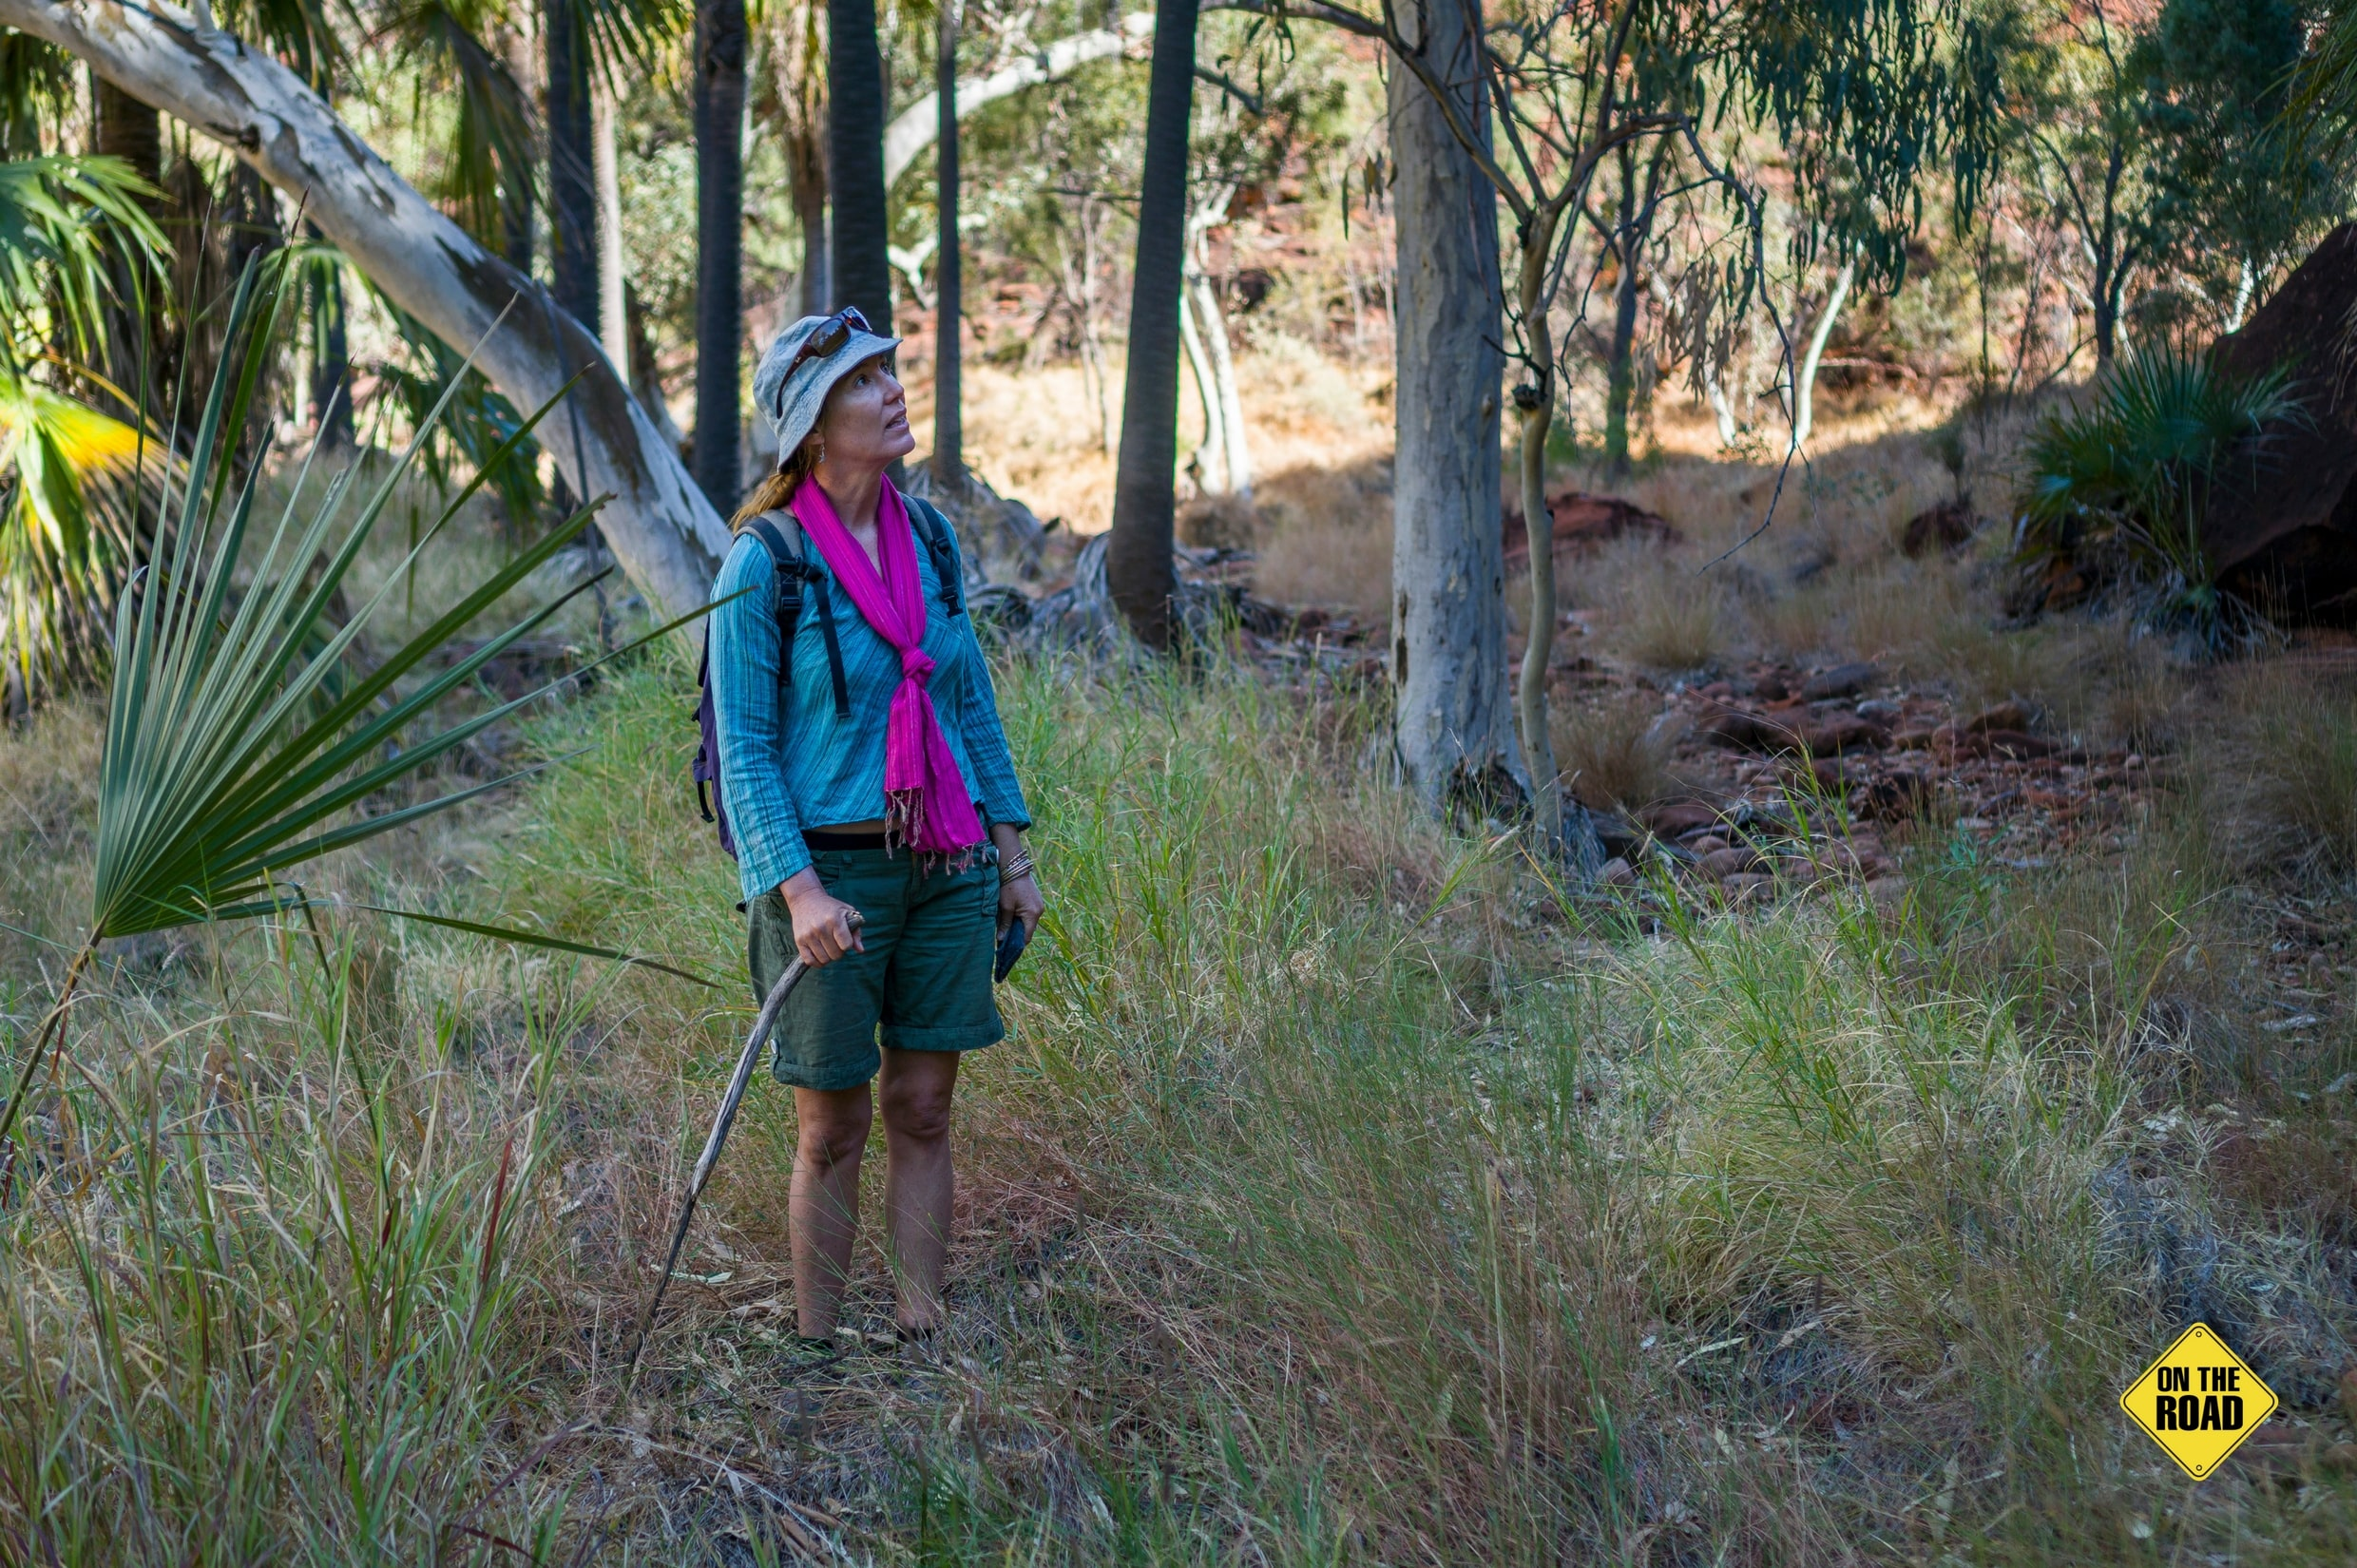 Great walking trails explore scenic pockets of Finke Gorge National Park